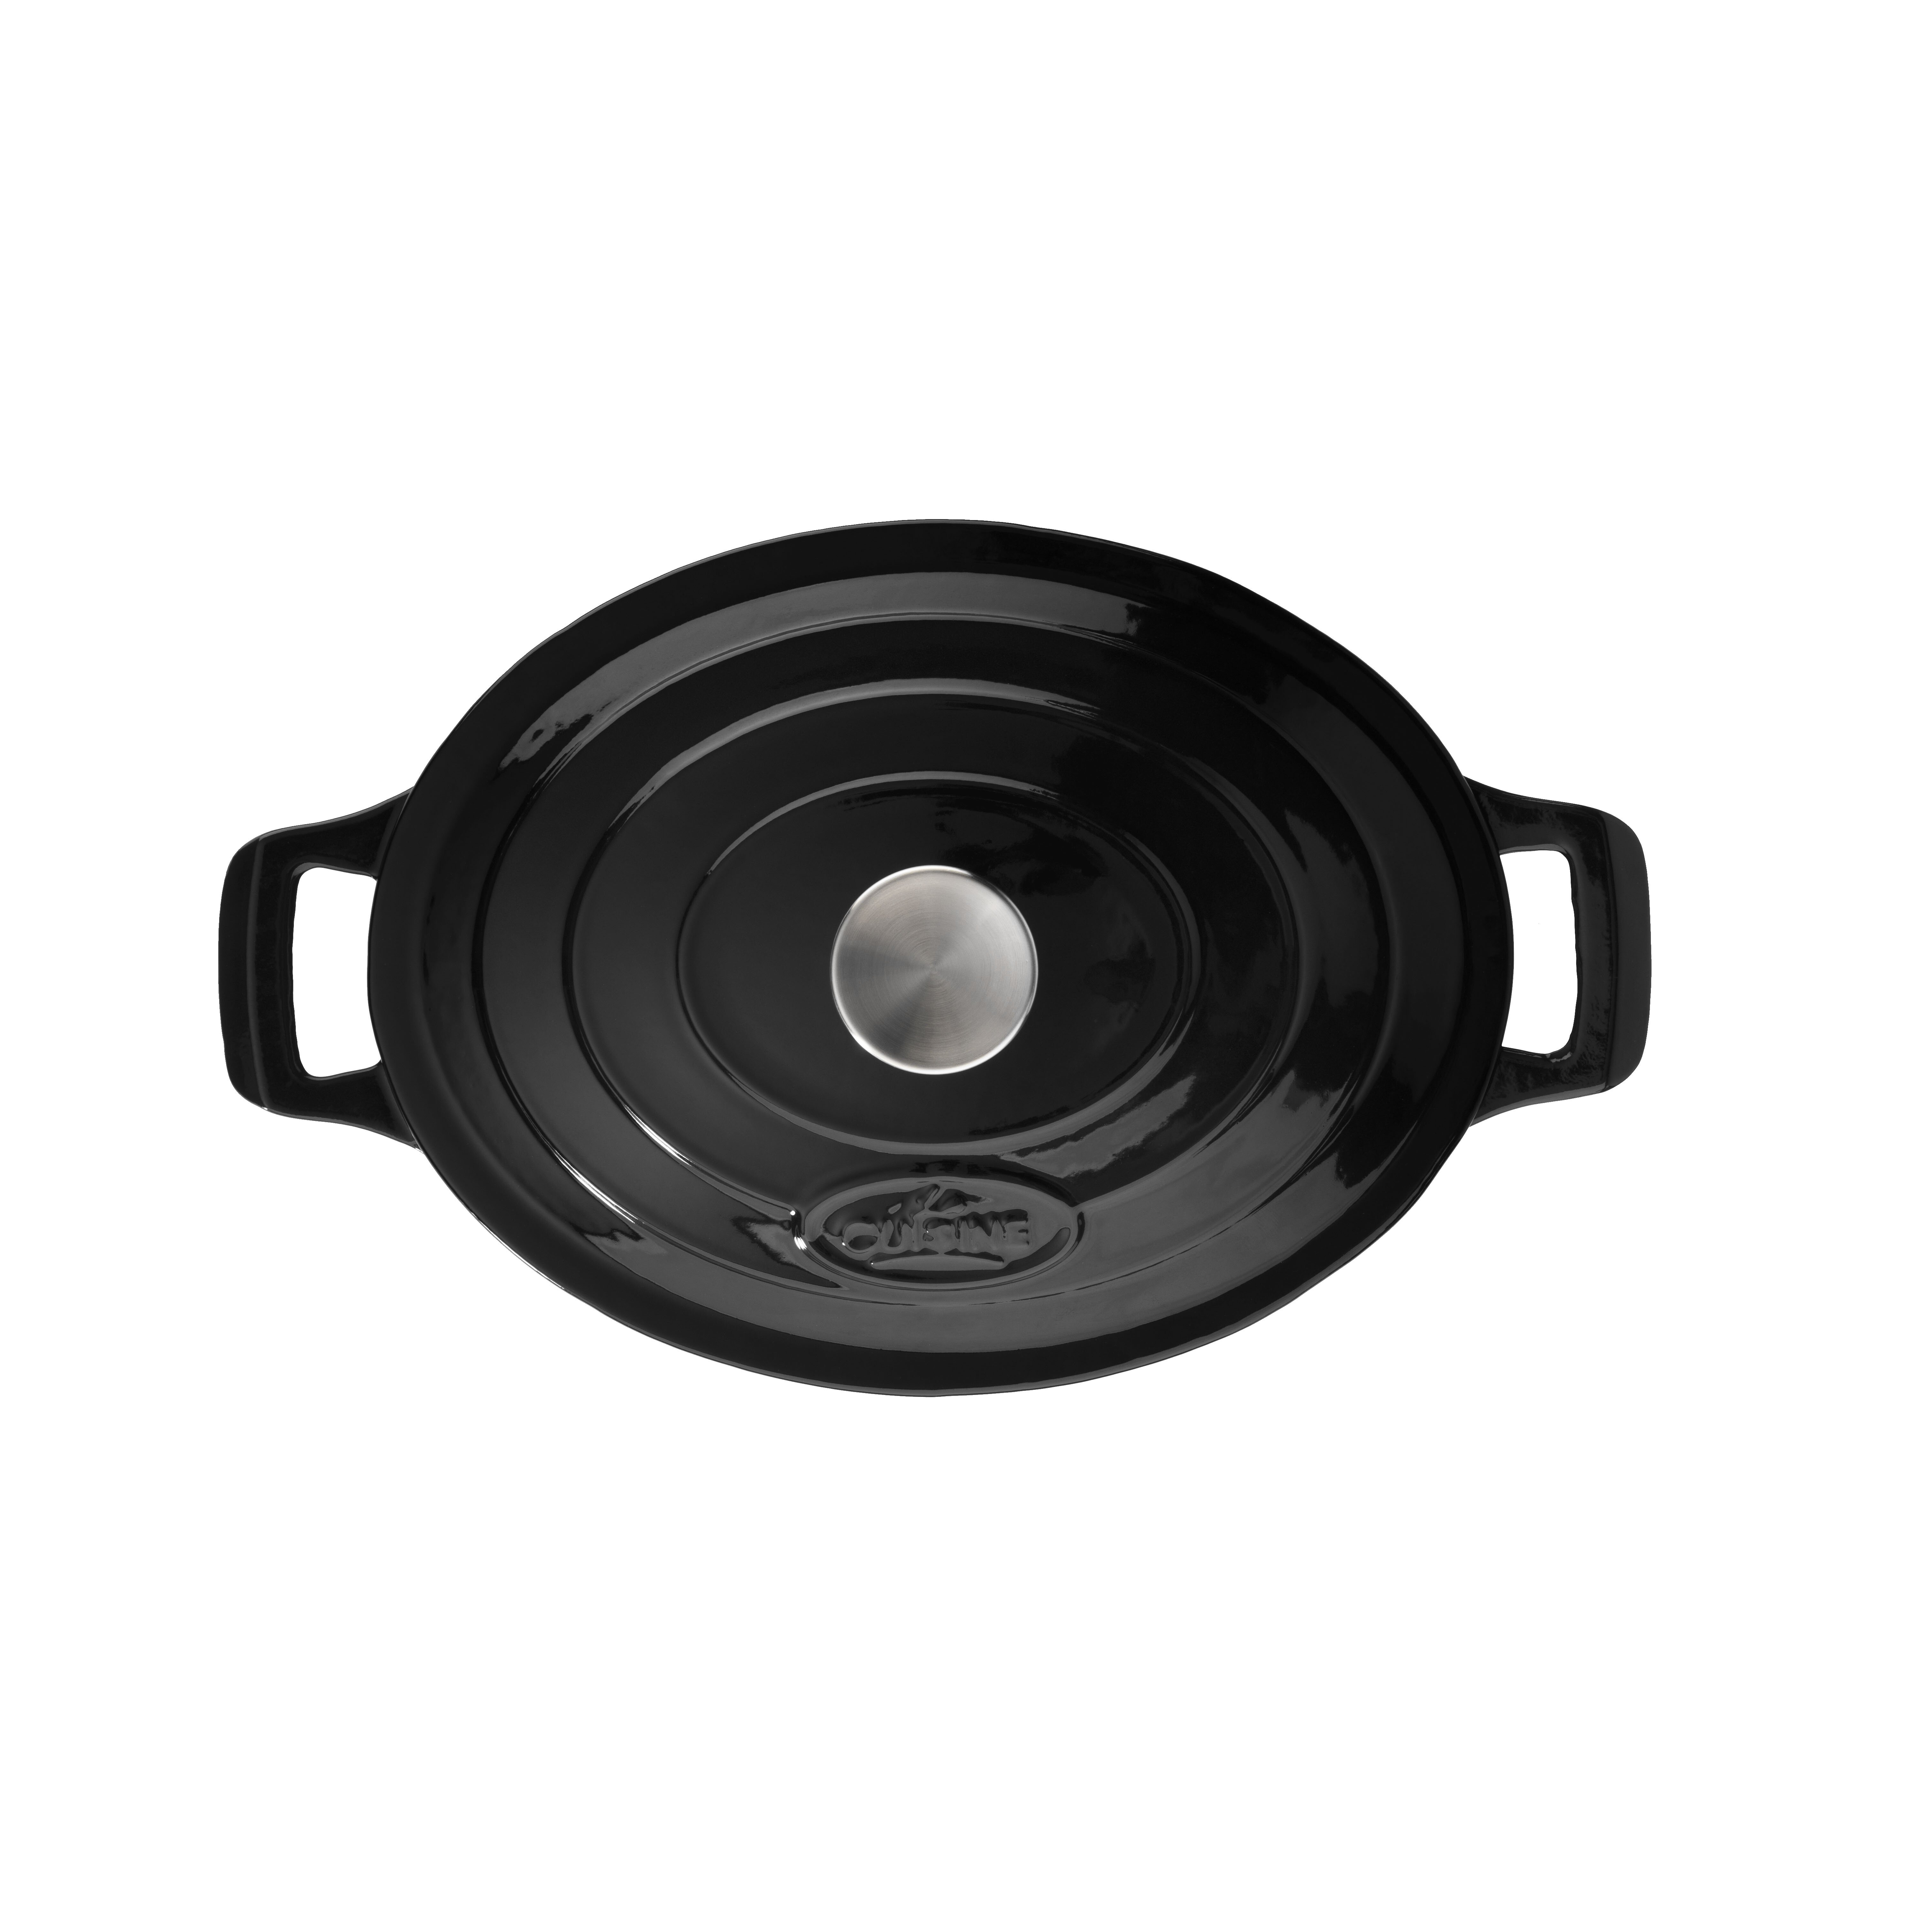 La cuisine cookware cast iron round casserole reviews for Art and cuisine cookware review